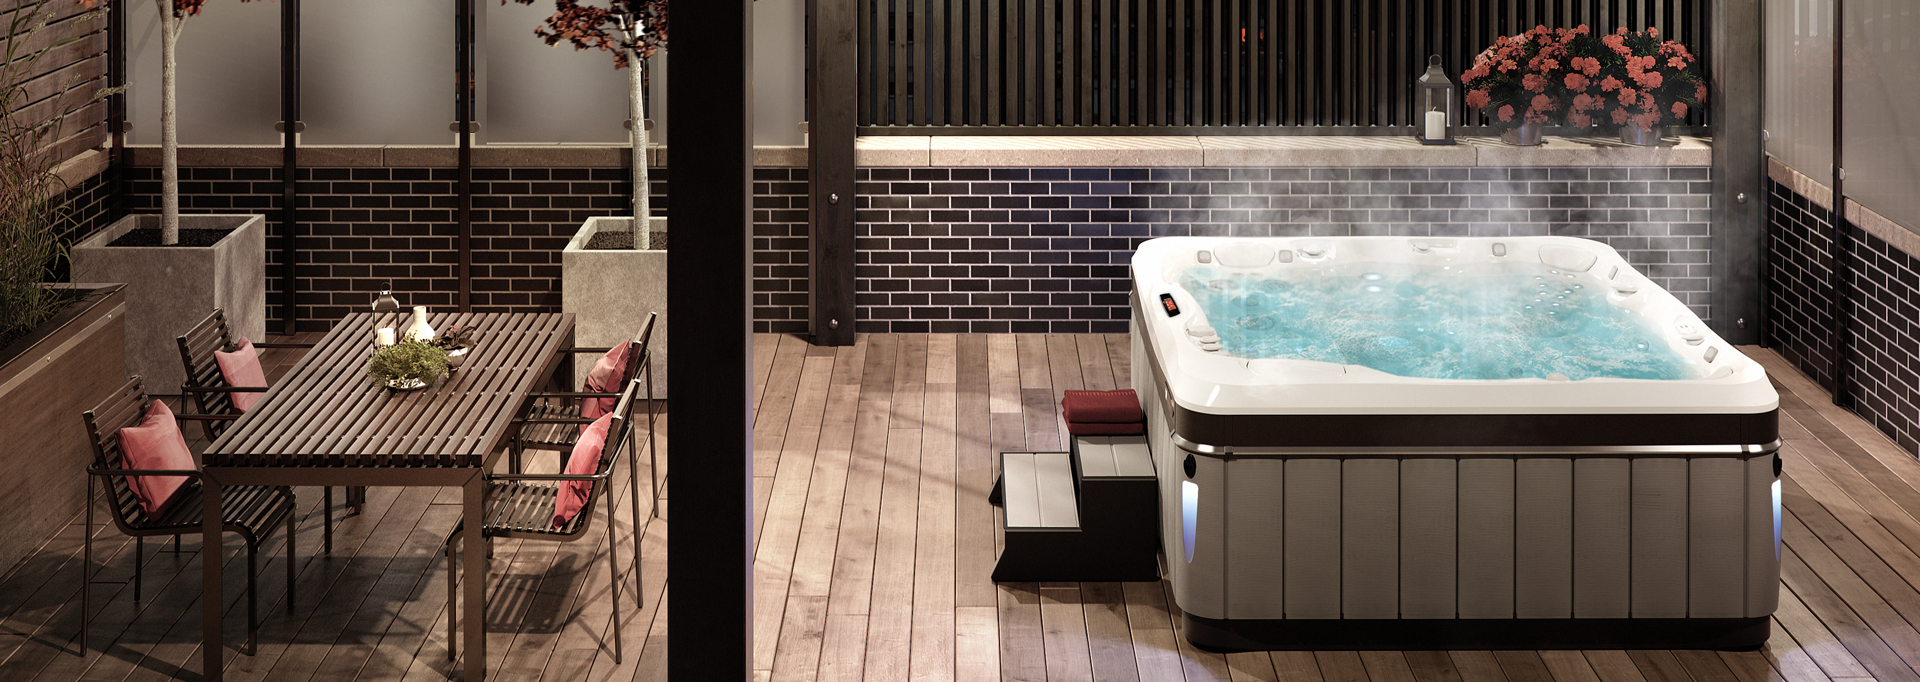 Finest Luxury Spas & Hot Tubs, Chester